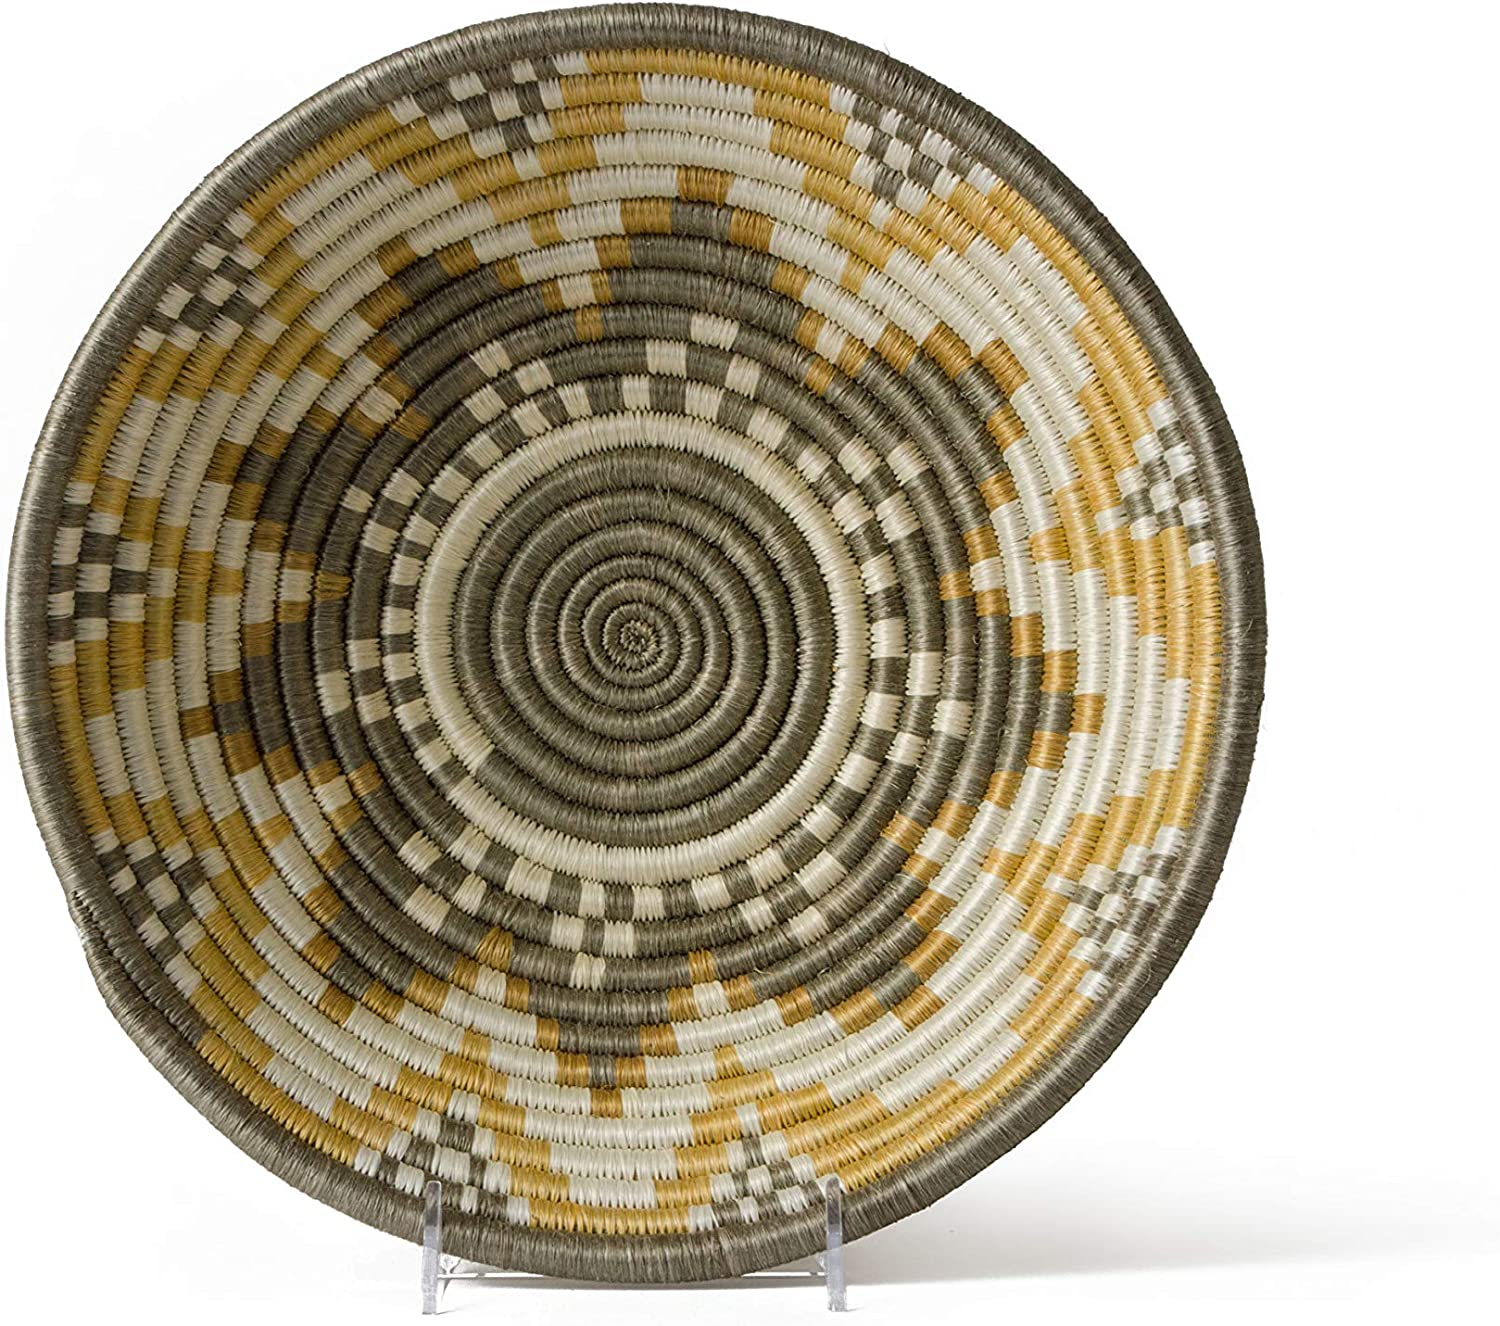 "All Across Africa Expressions Collection - Large Hanging Woven Wall Basket Decor, Decorative Serving or Fruit Basket, Food Safe, Handmade African Bowl - 12"" D x 3.5"" H, Soft Gold and Taupe"